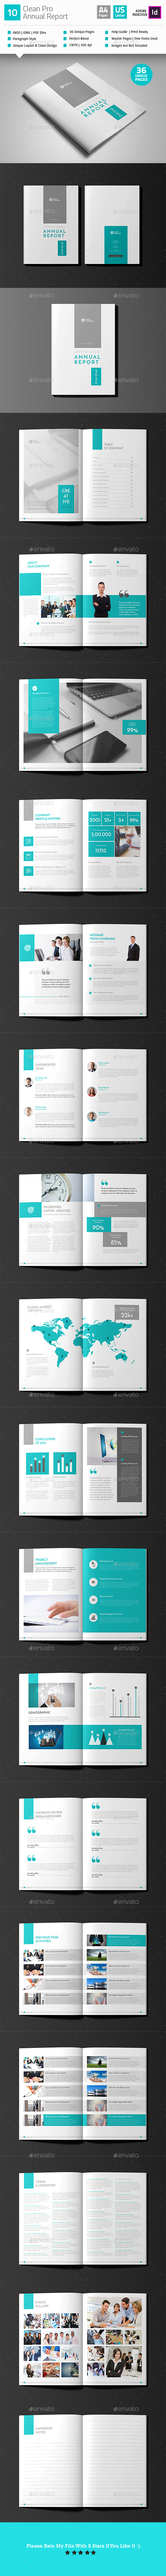 Clean Annual Report Brochure Template InDesign INDD | Layout ideas ...